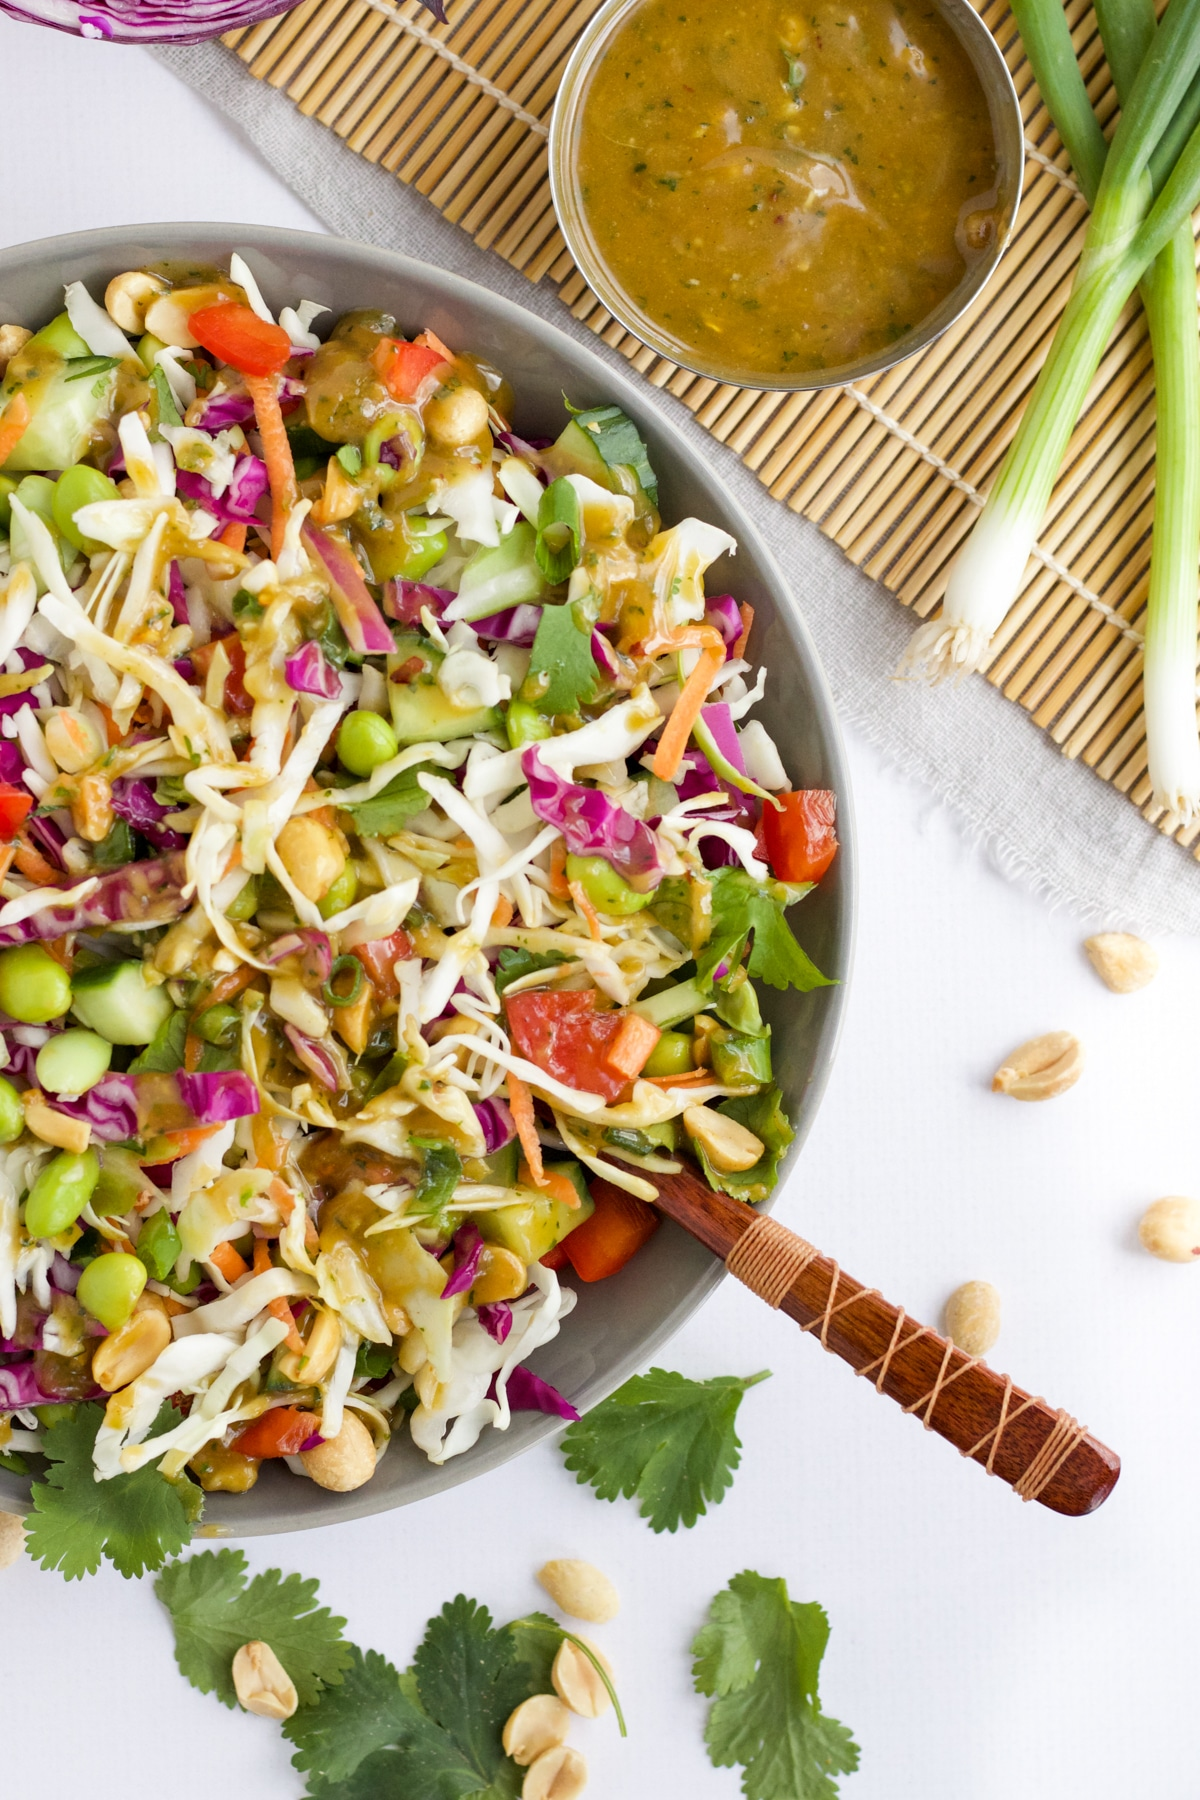 An overhead image of thai-inspired salad in a grey bowl with a side of dressing